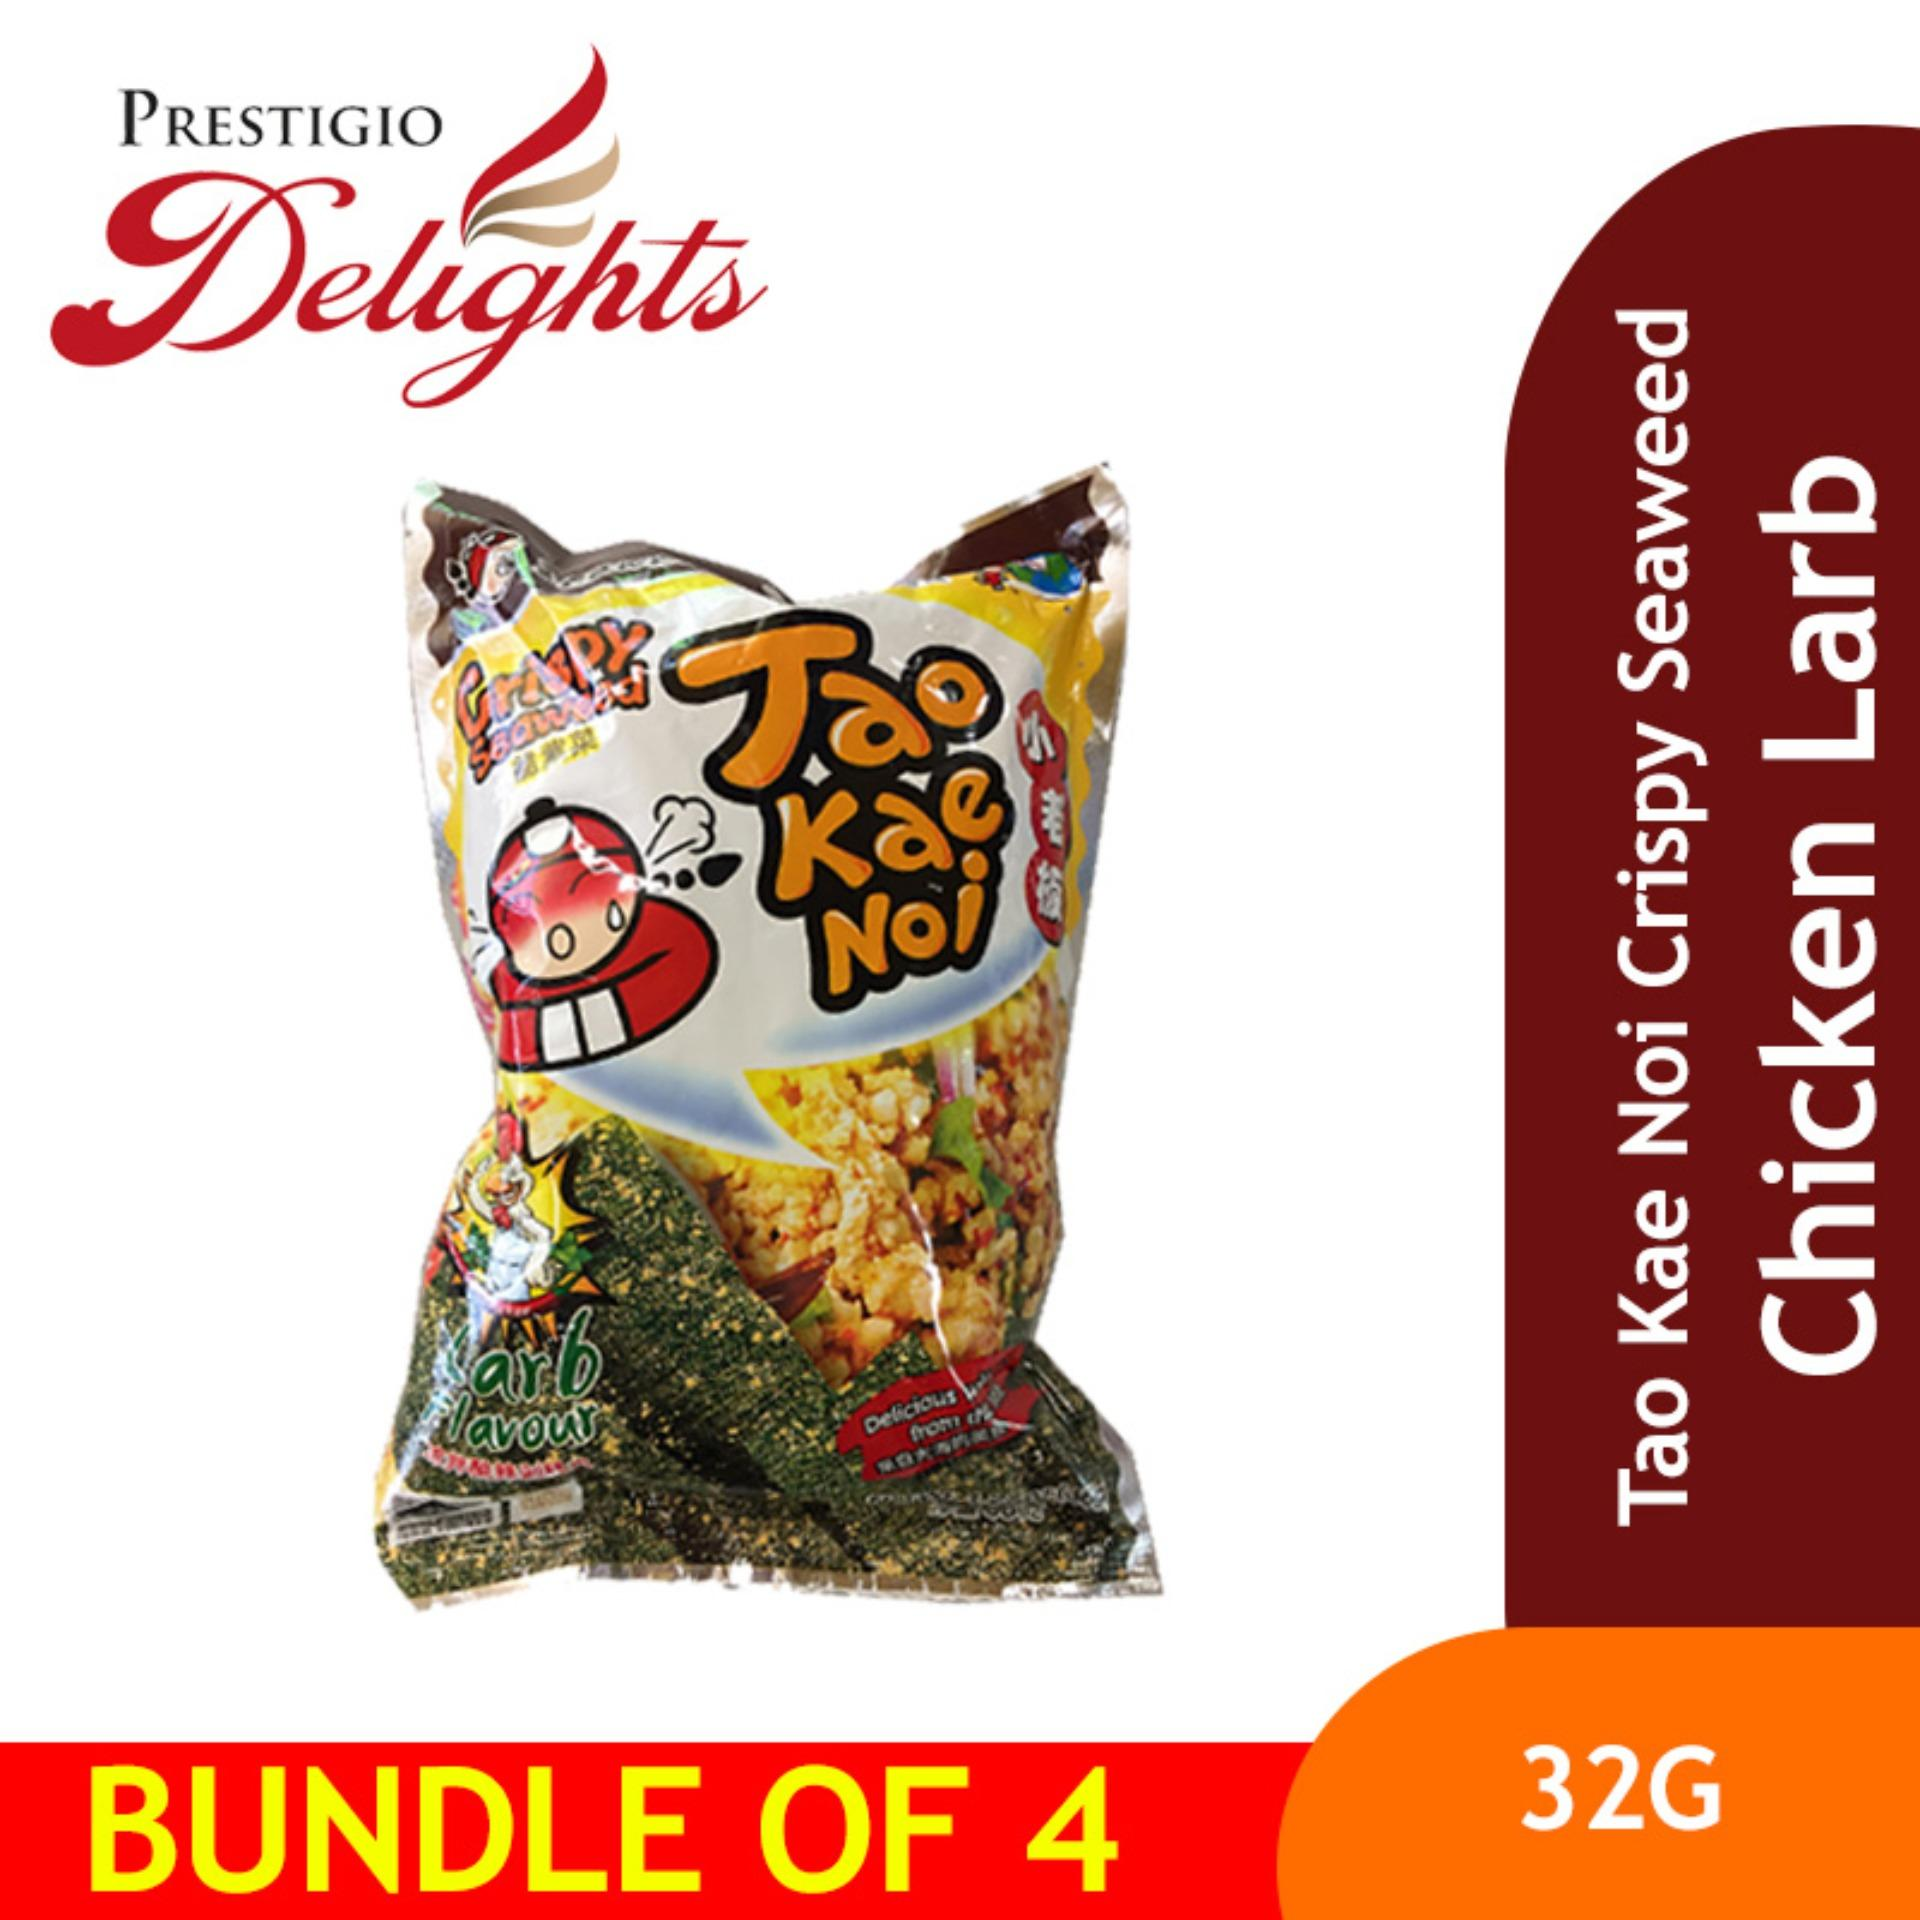 Tao Kae Noi Crispy Seaweed - 32g Chicken Larb Bundle Of 4 By Prestigio Delights.